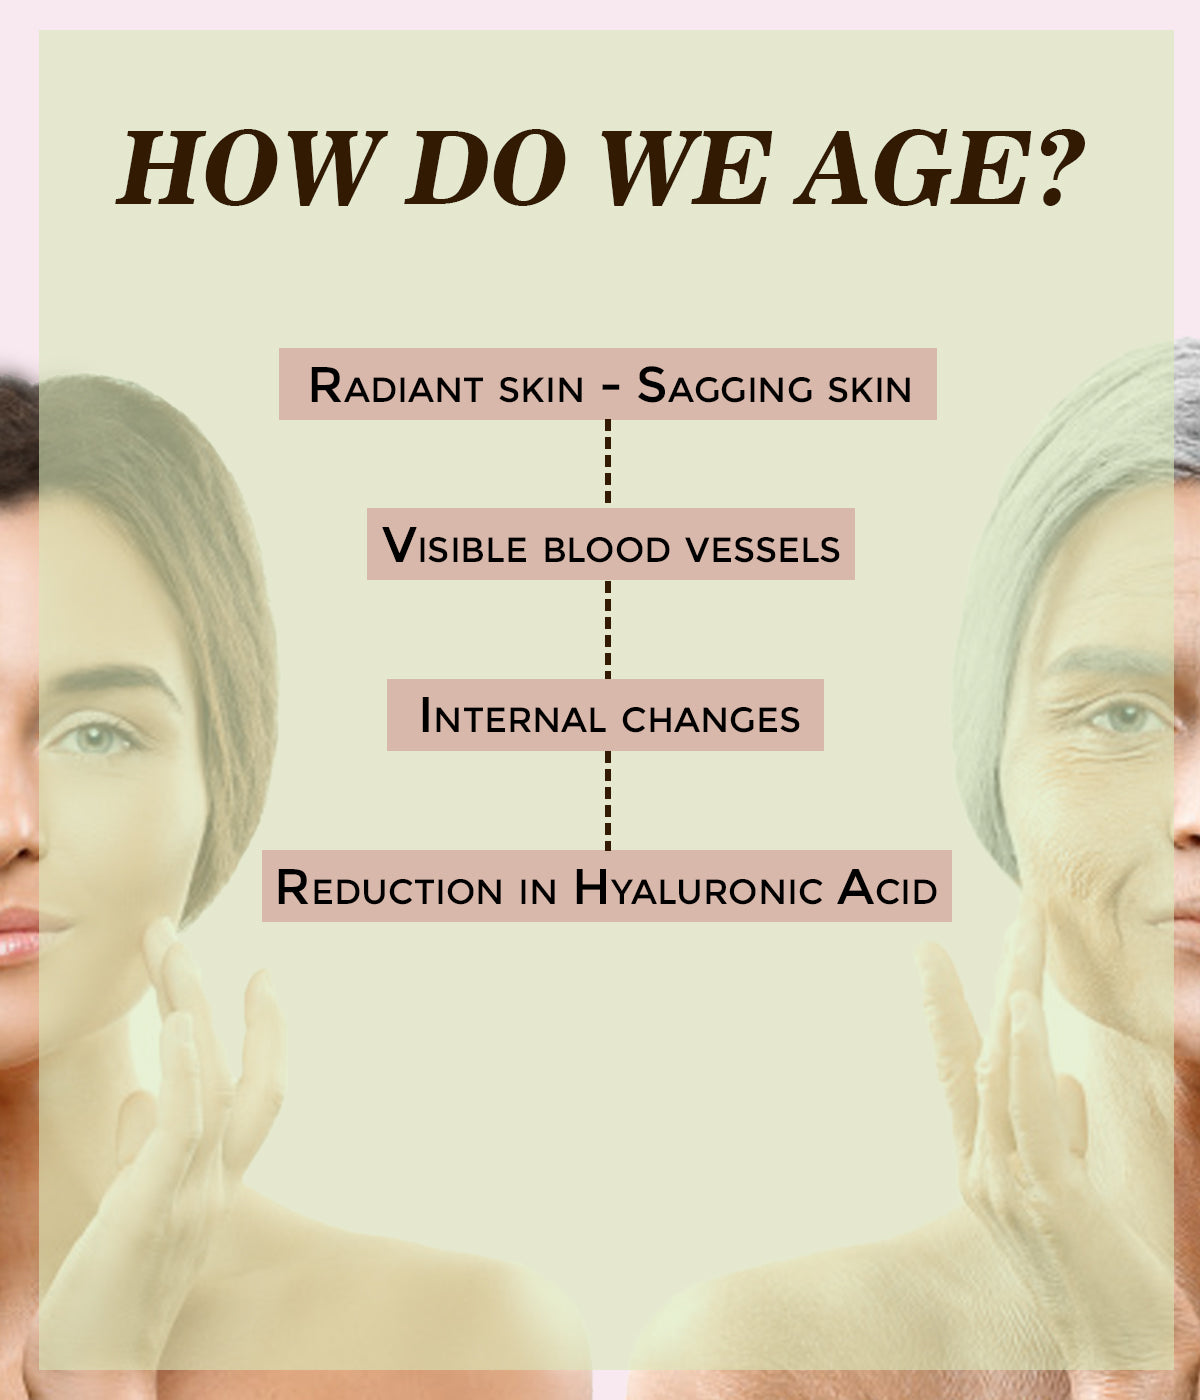 This is an image of how we age on www.sublimelife.in